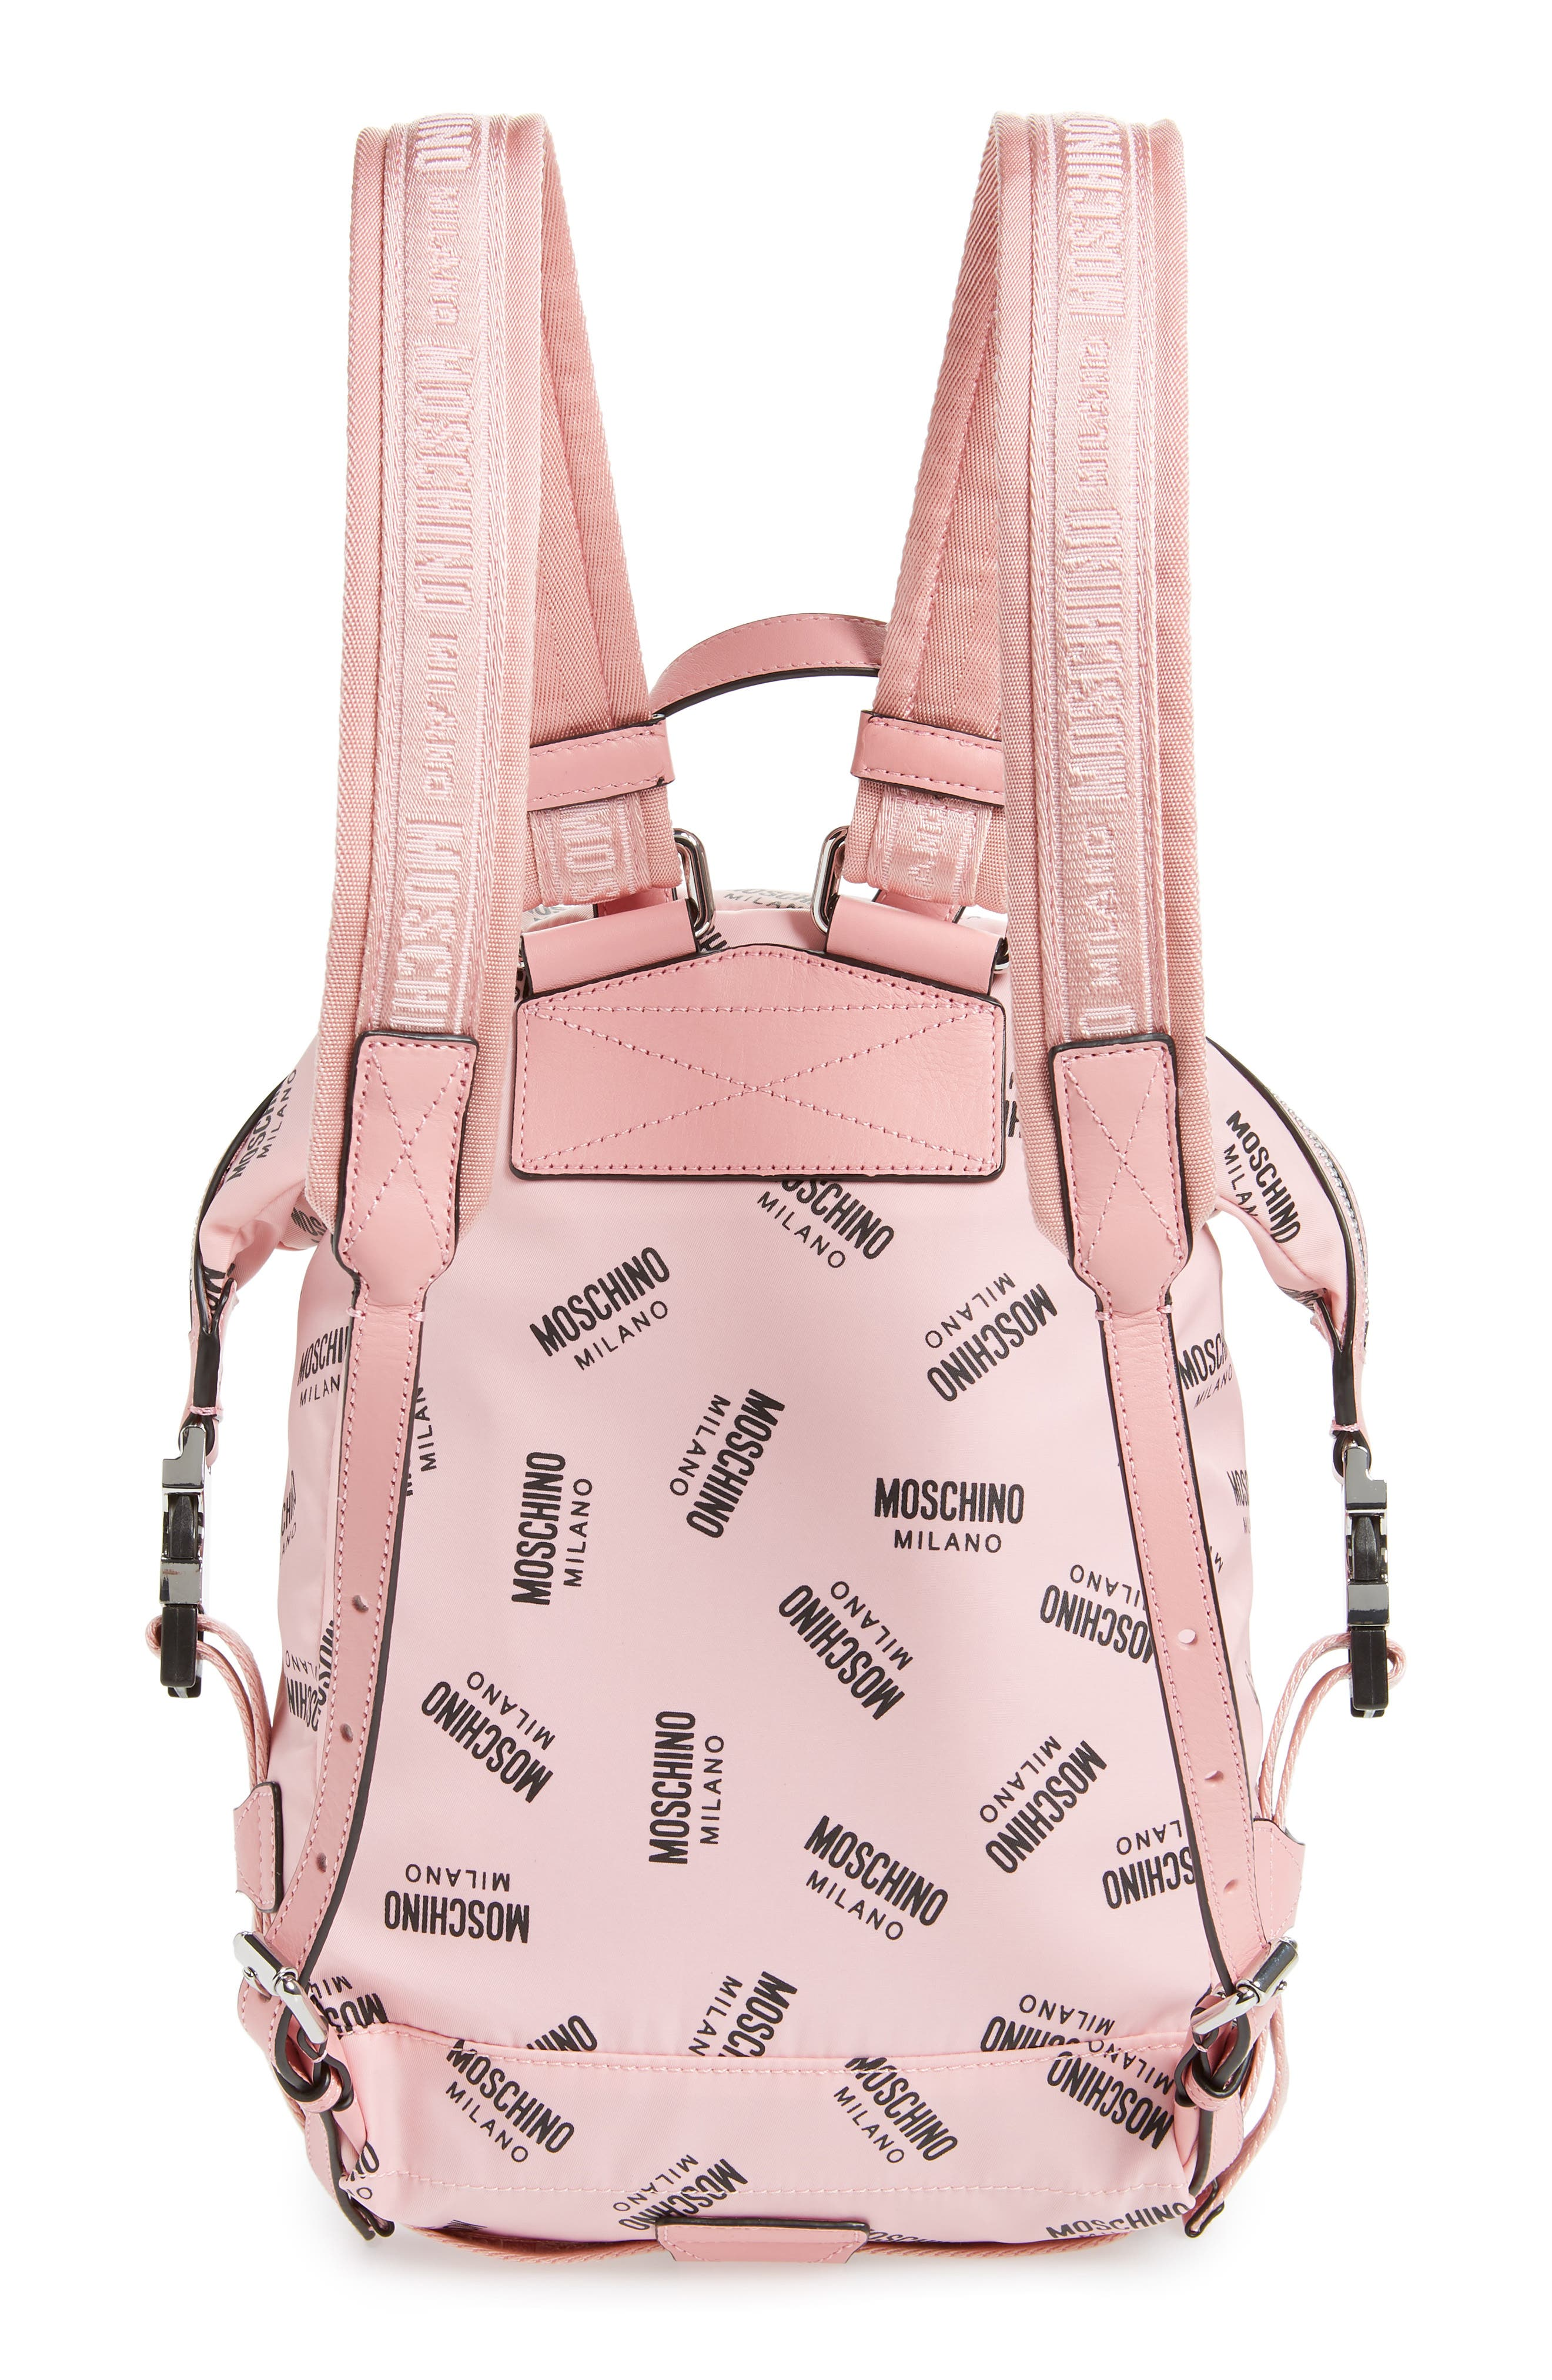 MOSCHINO, Small Logo Backpack, Alternate thumbnail 3, color, PINK